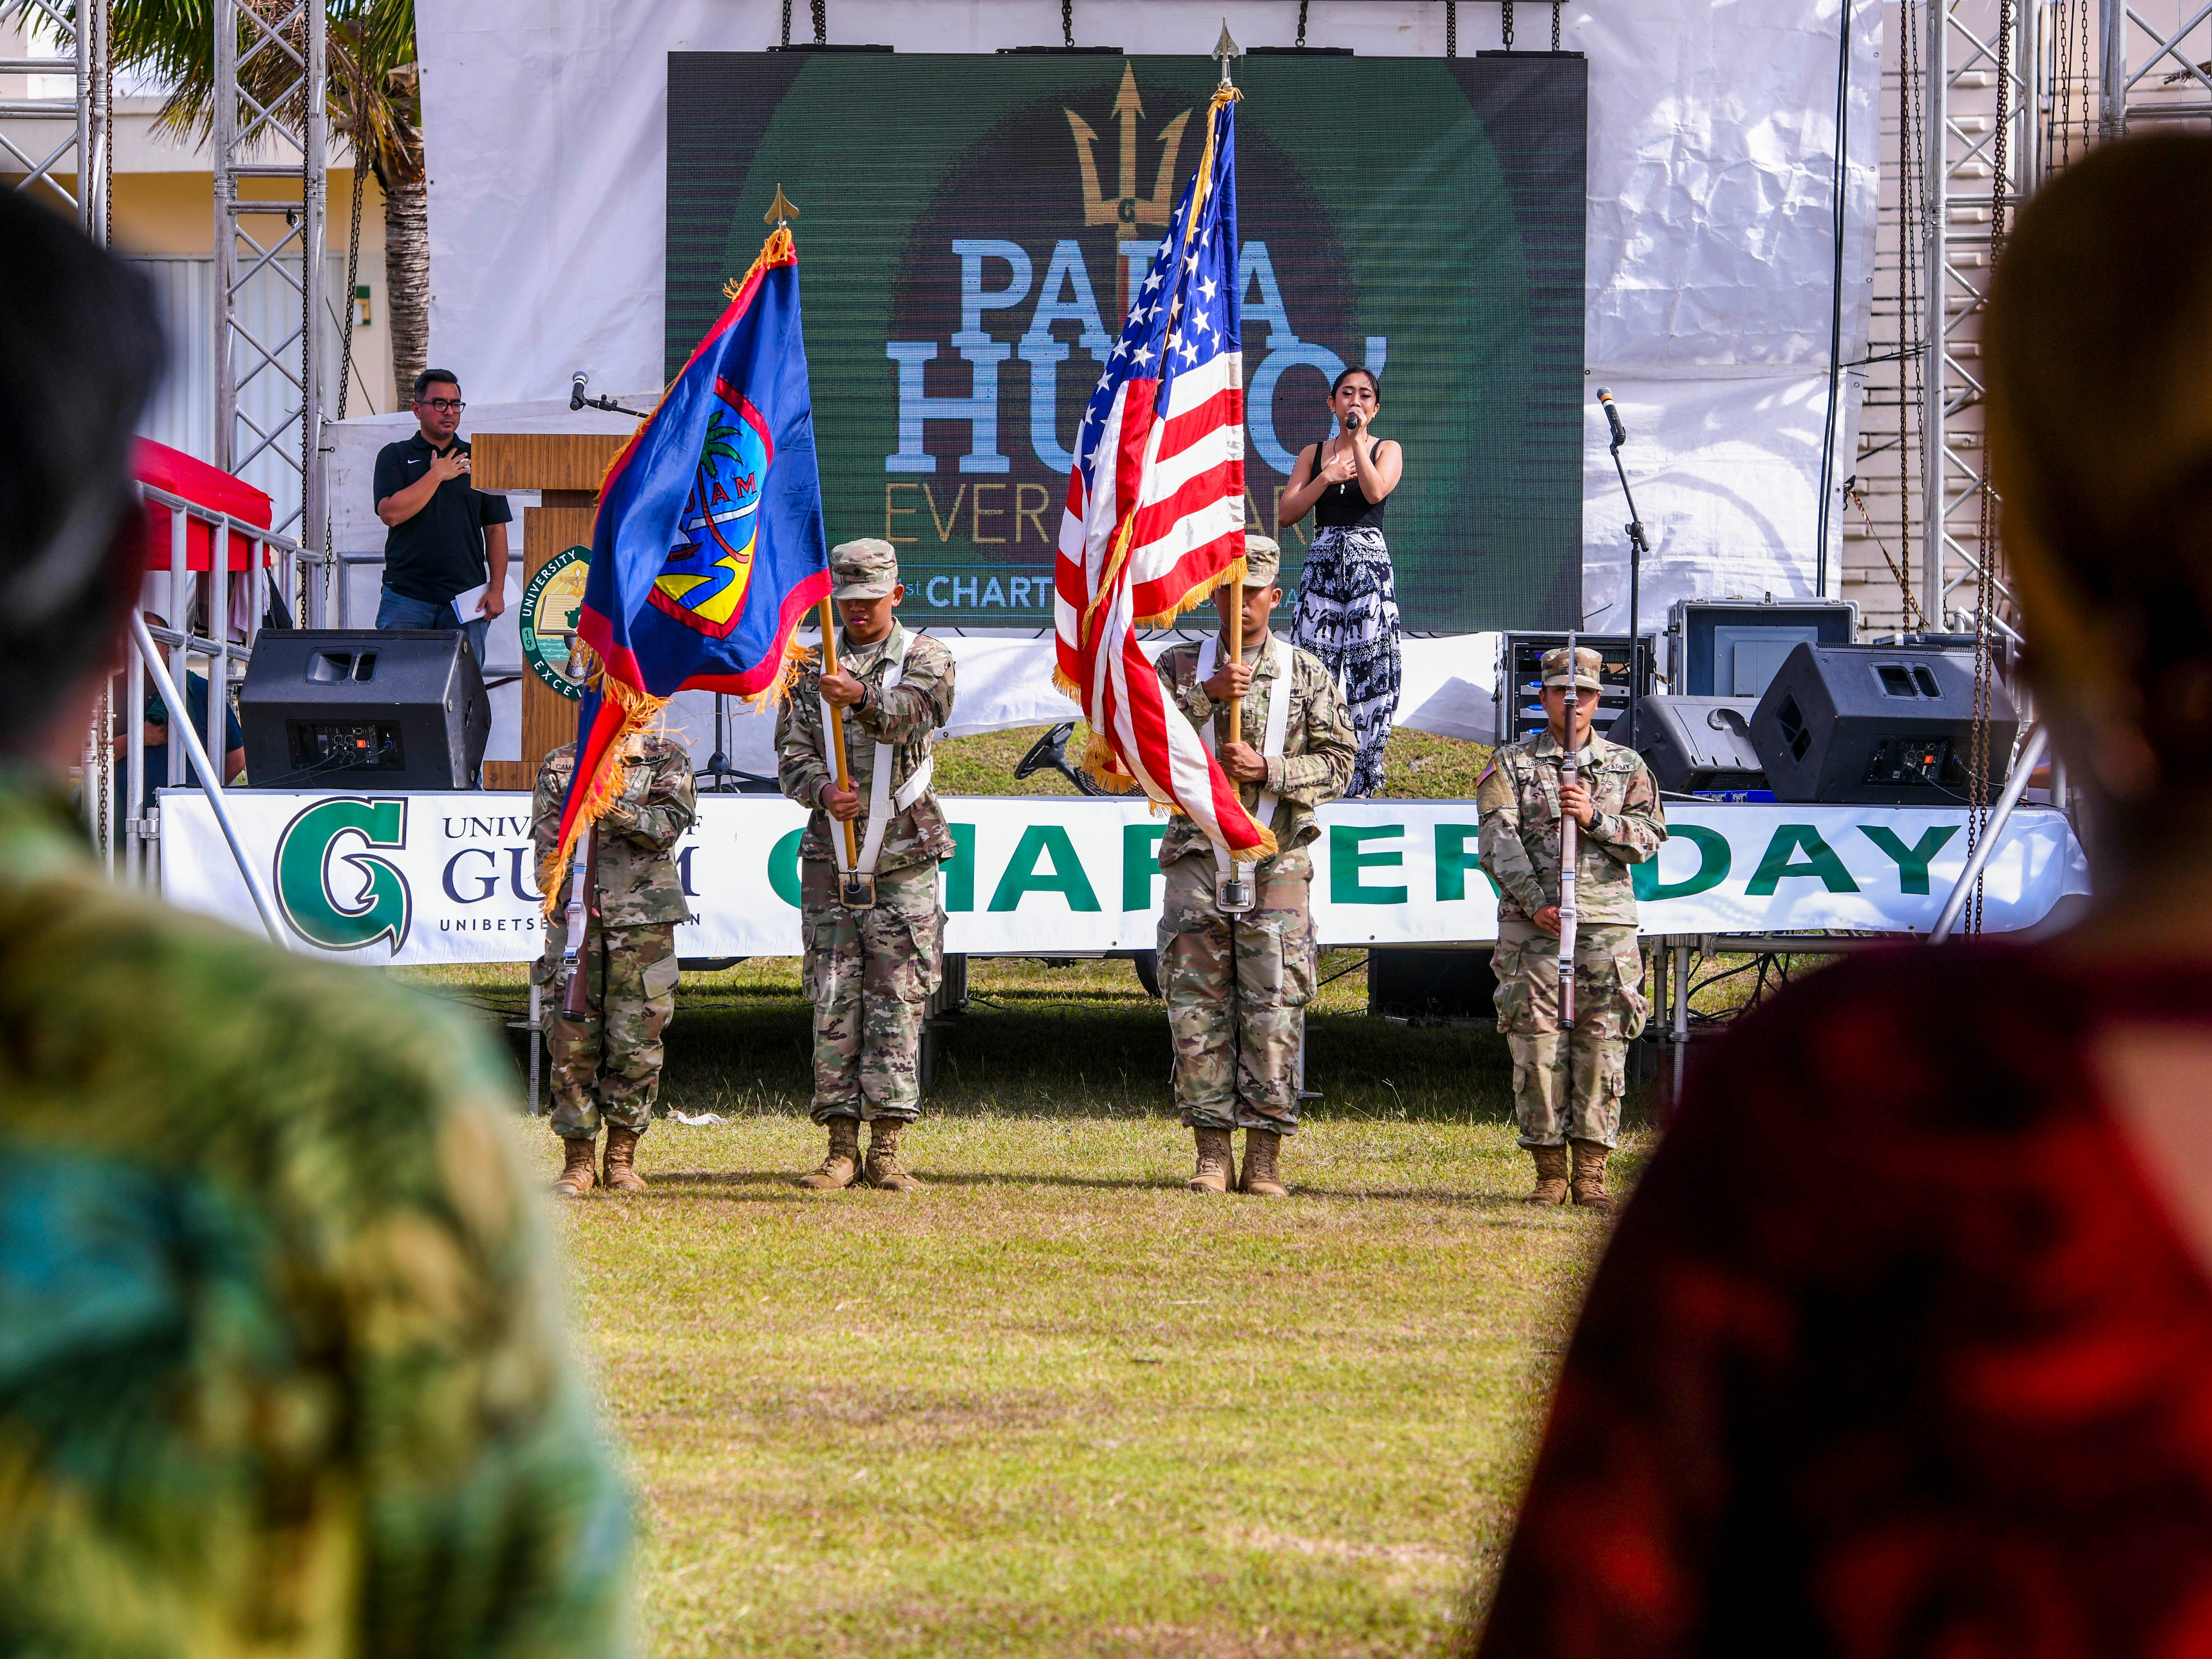 The American and Guam flags are posted by Army ROTC cadets as music student Diane Lubas performs the national anthem during the opening ceremony University of Guam's 51st Charter Day in Mangilao on Tuesday, March 12, 2019.